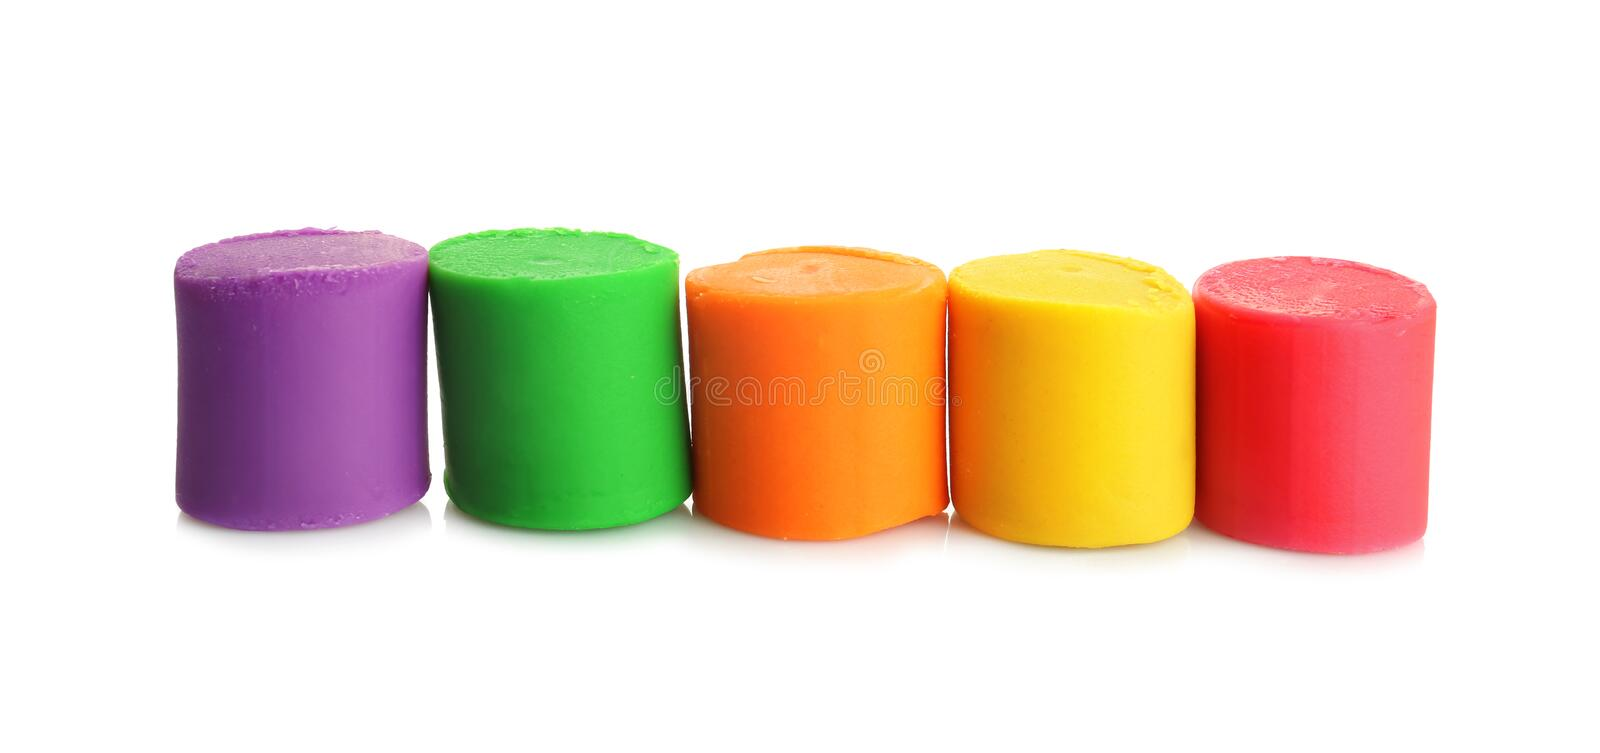 Colorful play dough on background. Colorful play dough on white background stock image